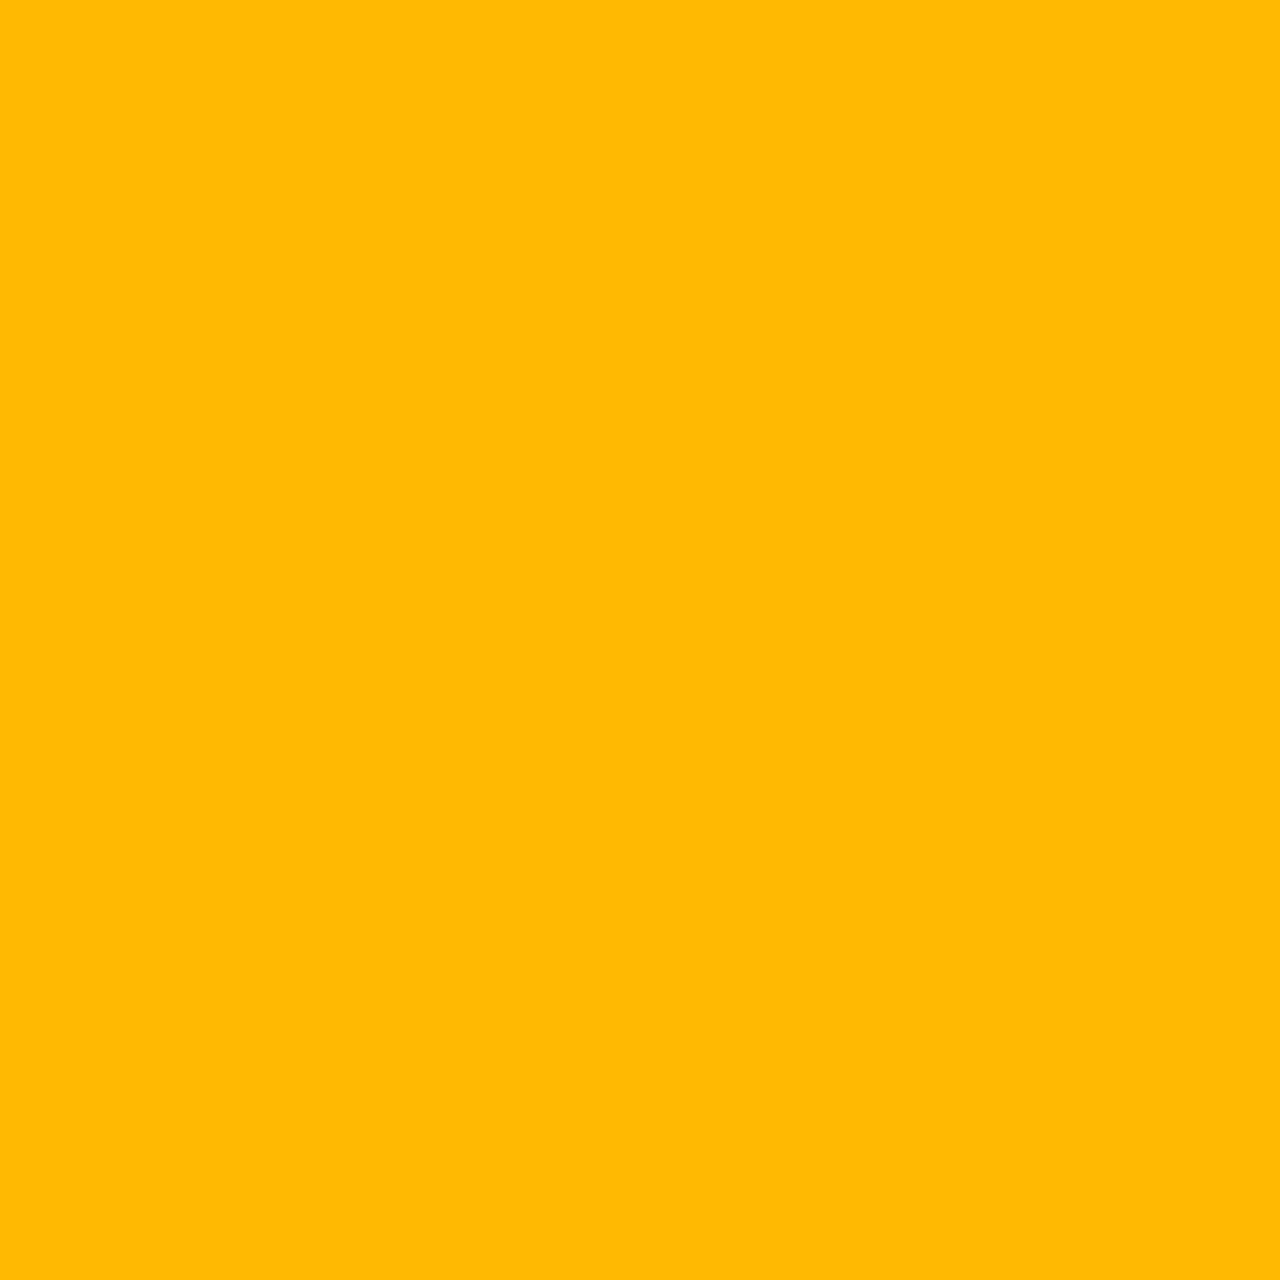 """#0312 Rosco Gels Roscolux Canary, 20x24"""""""